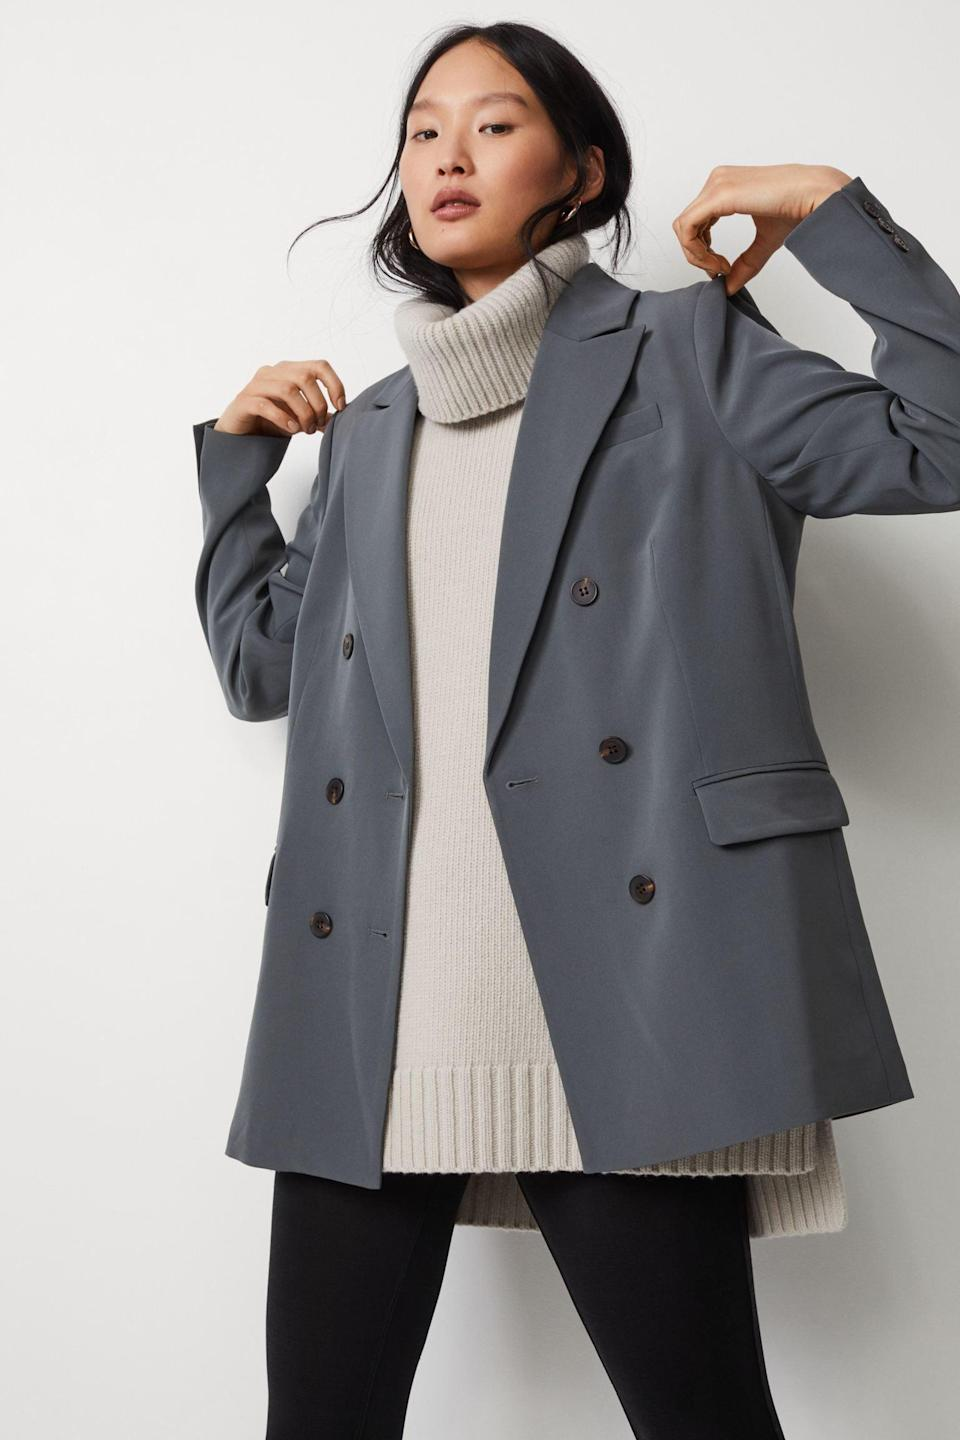 <p>This luxe-looking <span>Double-breasted Jacket</span> ($50) will make you feel in control. Pair it with a thick turtleneck for a power look.</p>